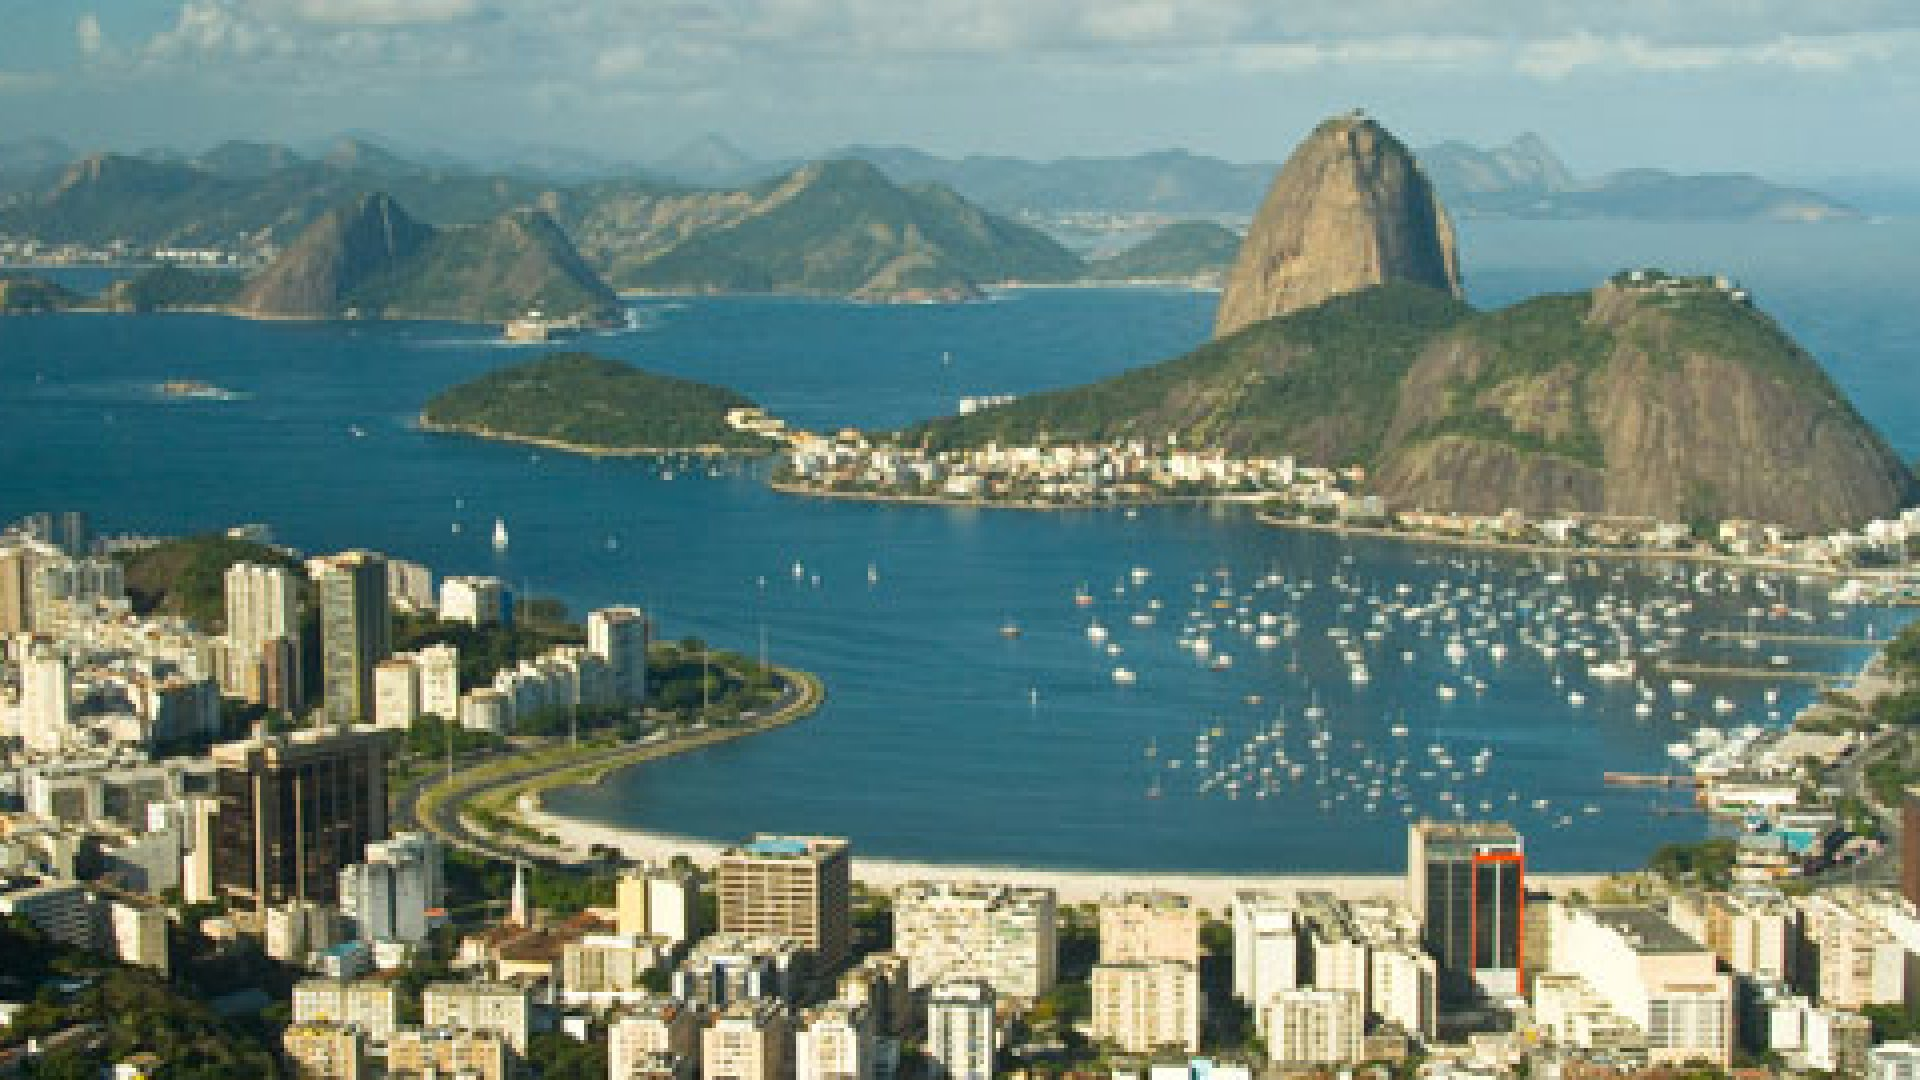 Rio De Janeiro, Brazil, will host the 2016 Olympics—a sign of the region's increasing importance in the global economy.